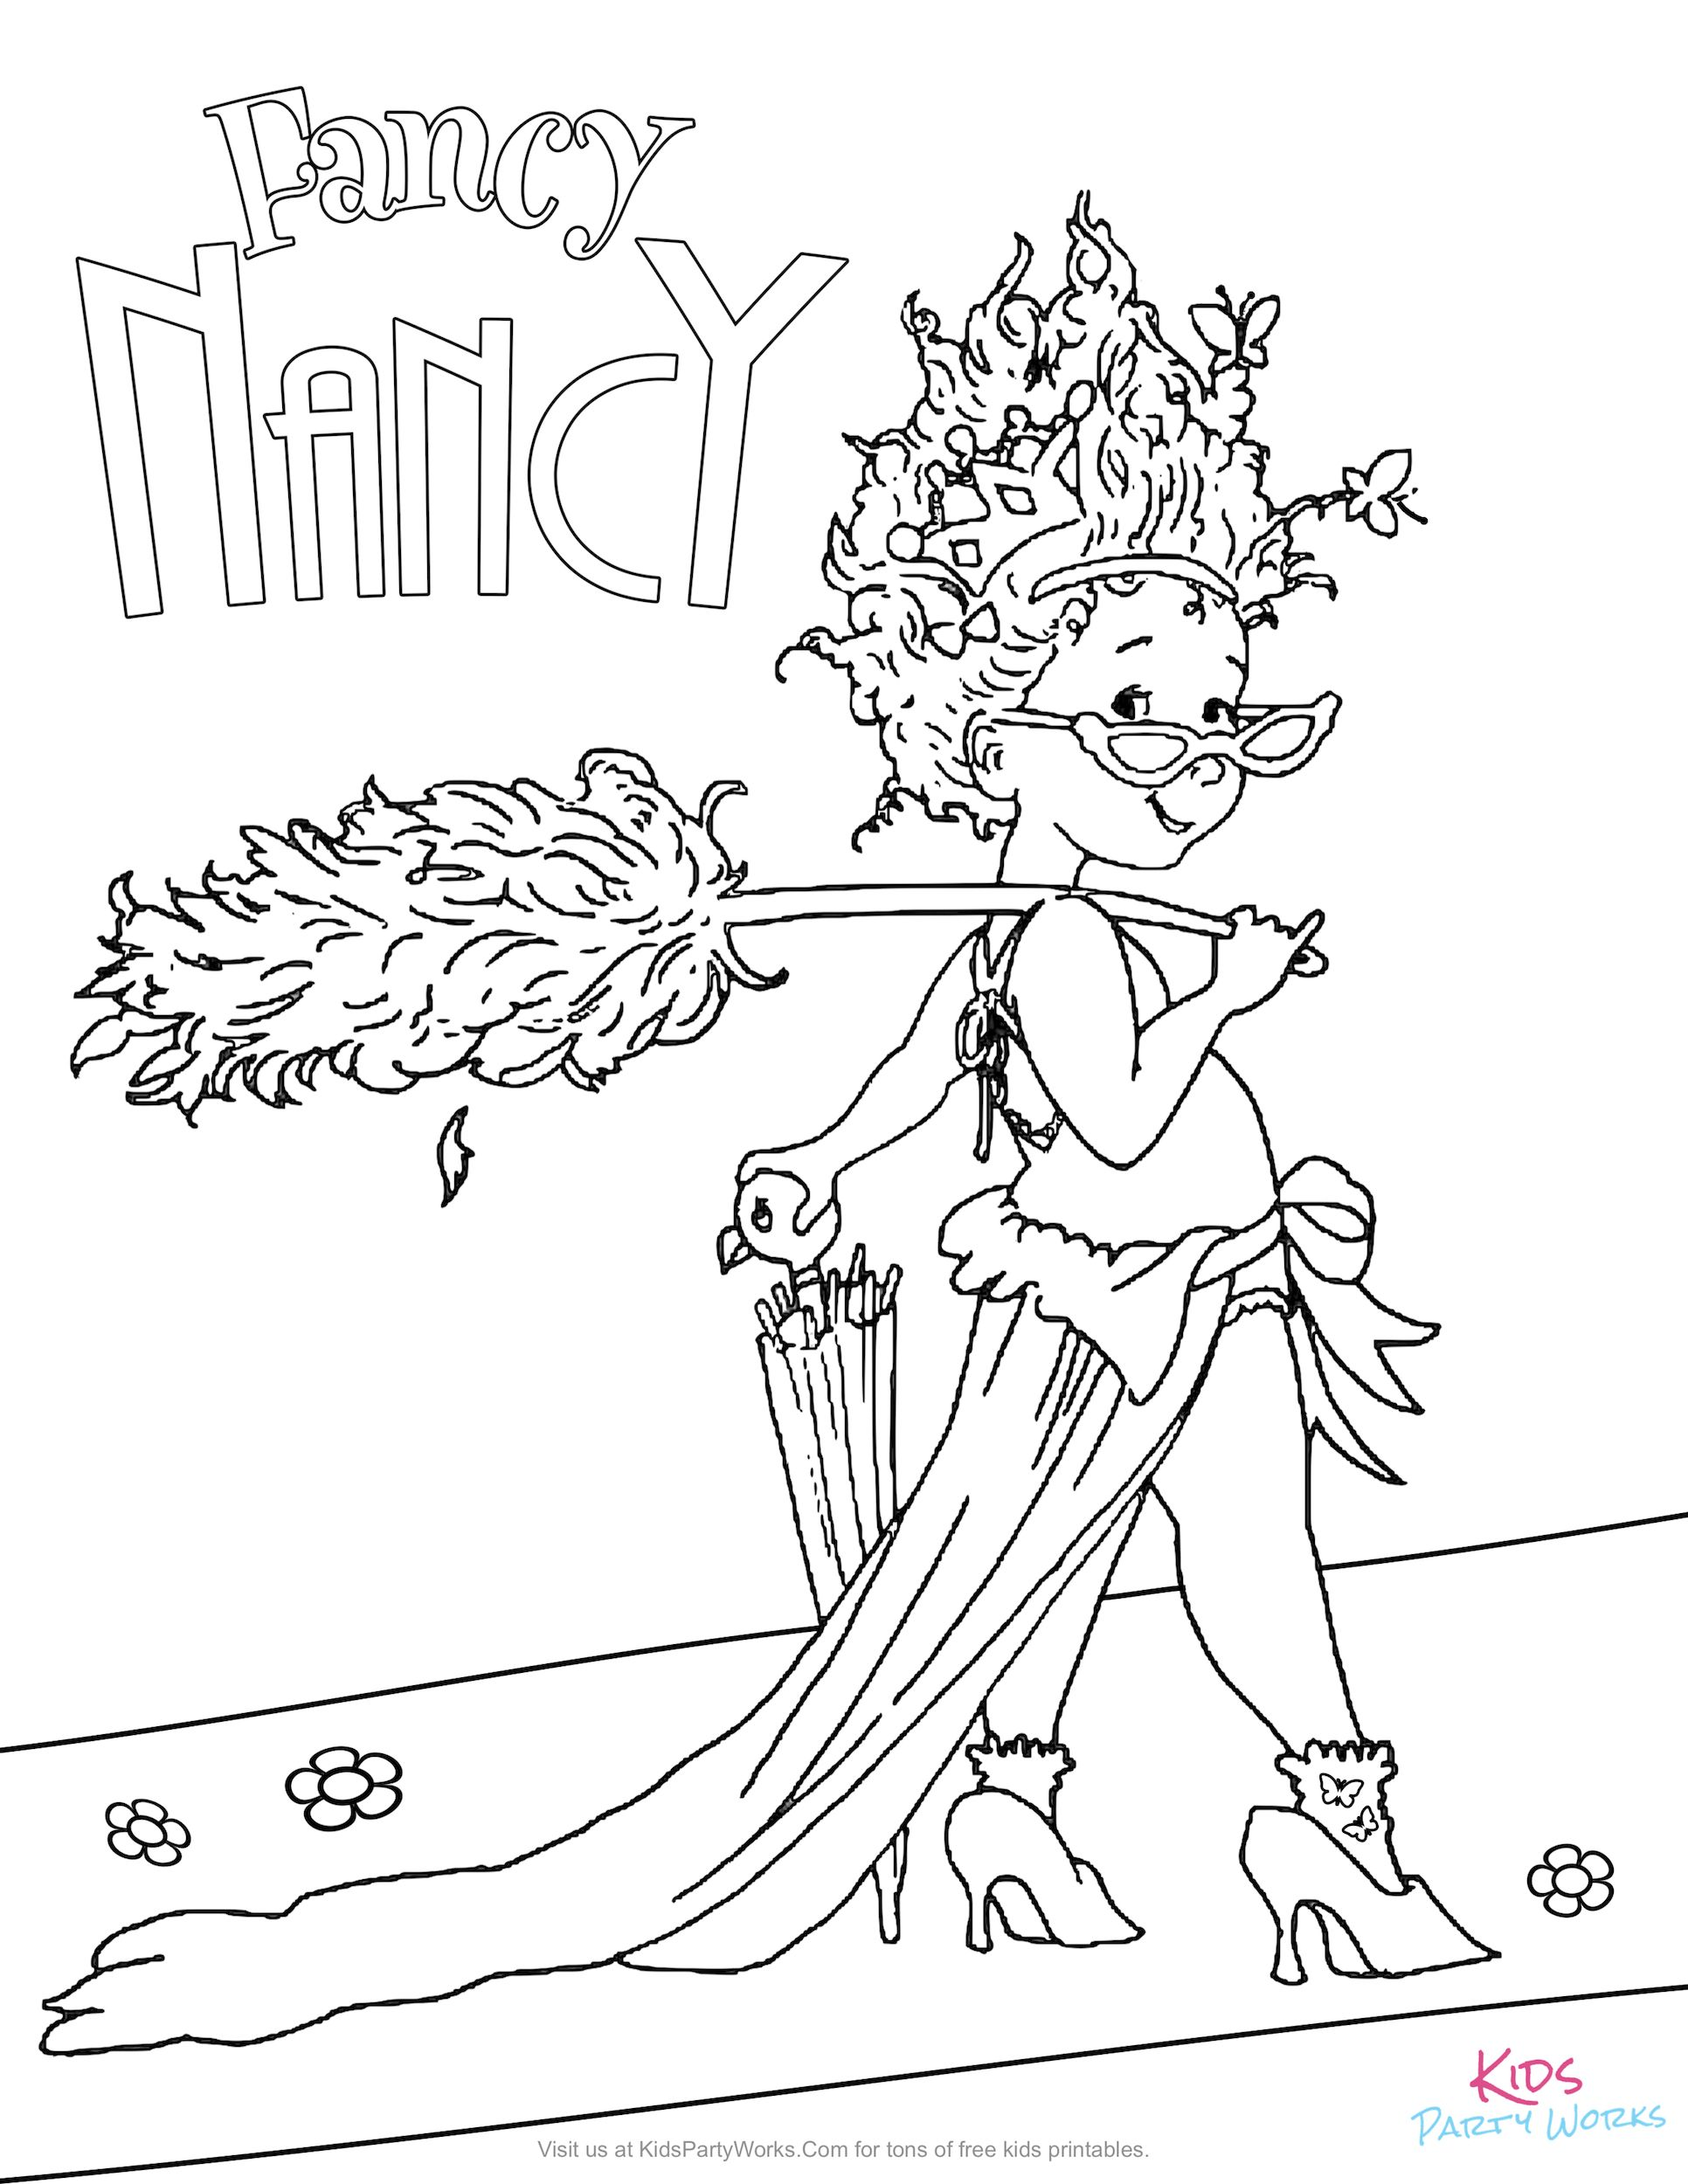 Have Fun Coloring This Free Fancy Nancy Coloring Page For Kids From The New Disney Jr Show Fancy Nancy Party Fancy Nancy Mermaid Coloring Pages